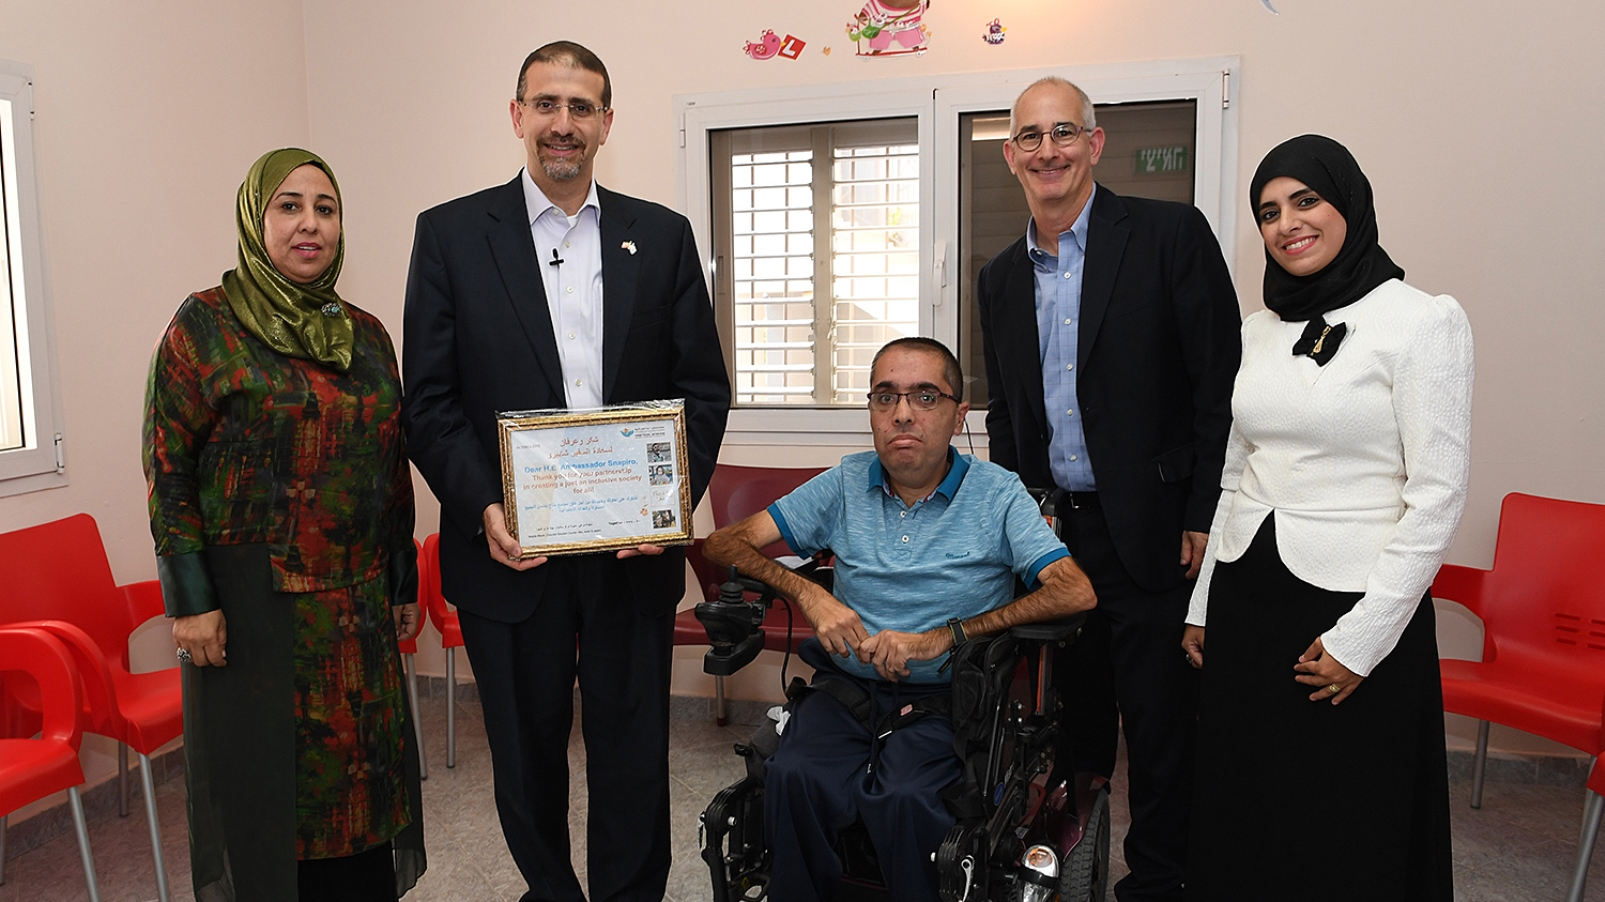 From left, BIS Sindian Center Director Majda Marei; US Ambassador to Israel Dan Shapiro; Nawaf Zmiro, director of the Family Advancement Center and Hotline; Benjy Maor of Beit Issie Shapiro; and Amal Abu Moch, a social worker at Sindian. Photo courtesy of US Embassy in Tel Aviv